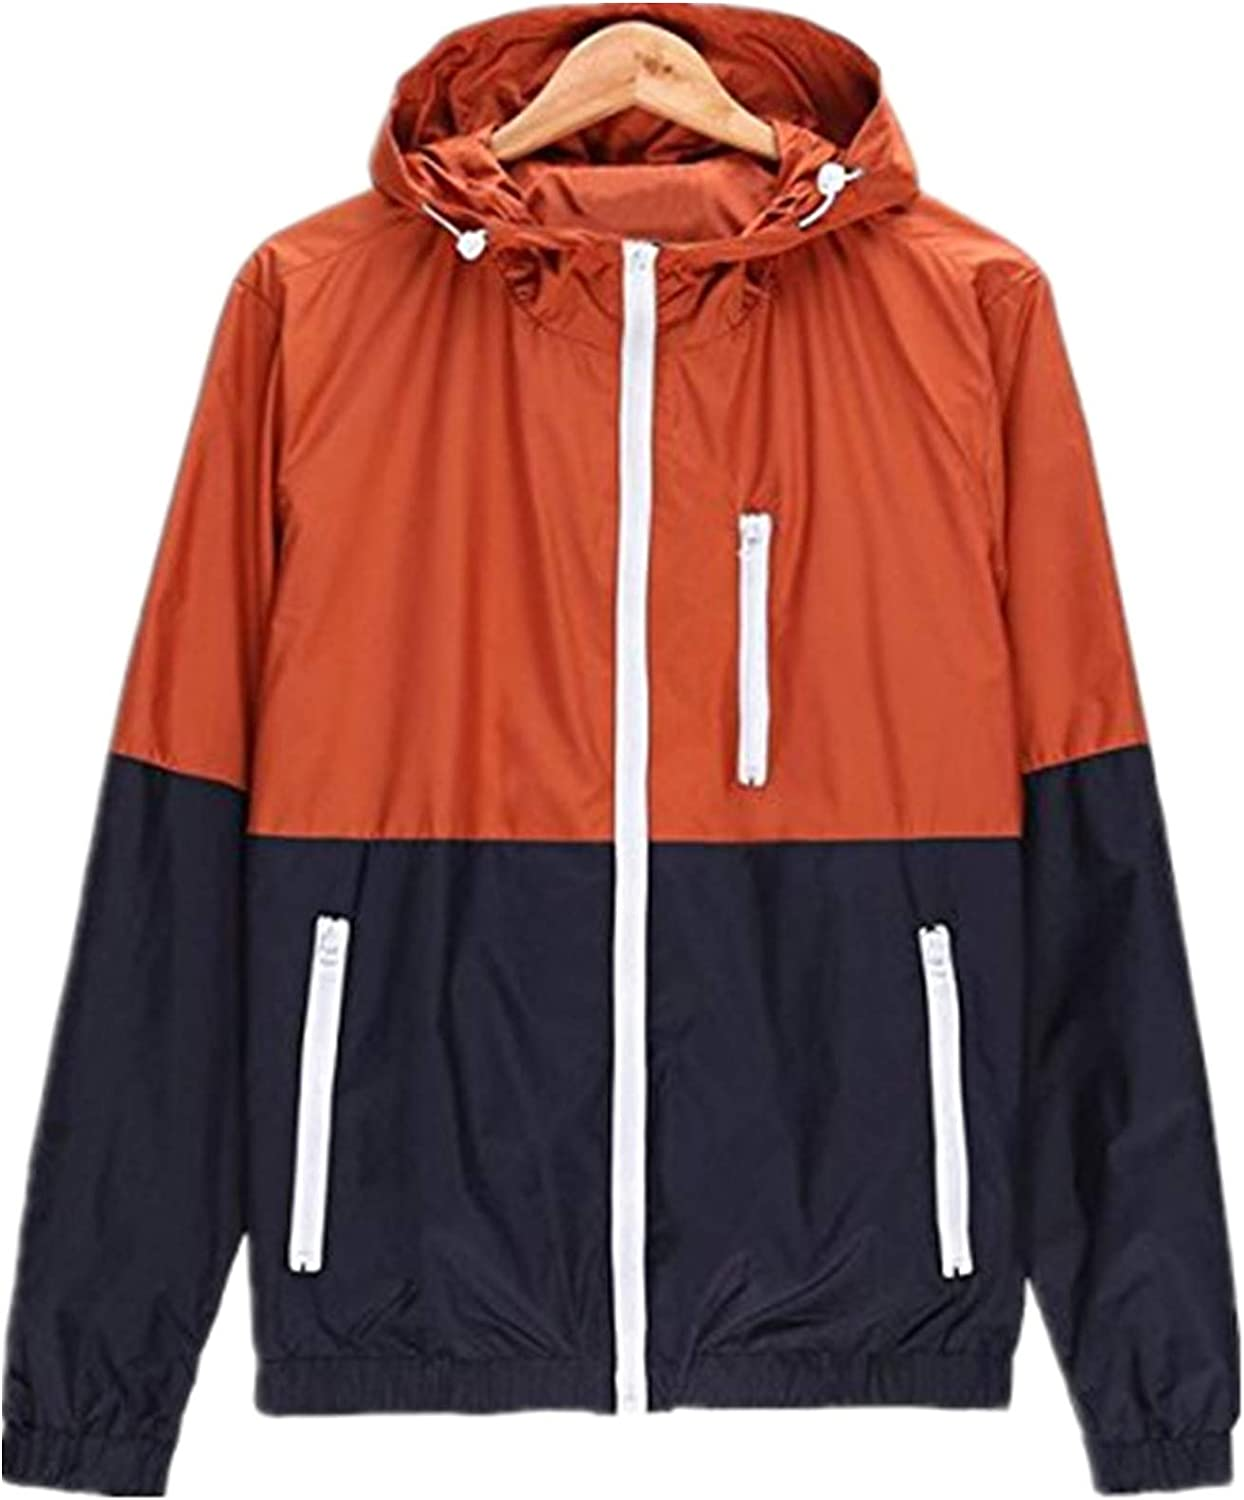 Taiduosheng Womens Light Weight Hooded Sport Outdoor Limited time cheap sale Windbreaker 25% OFF